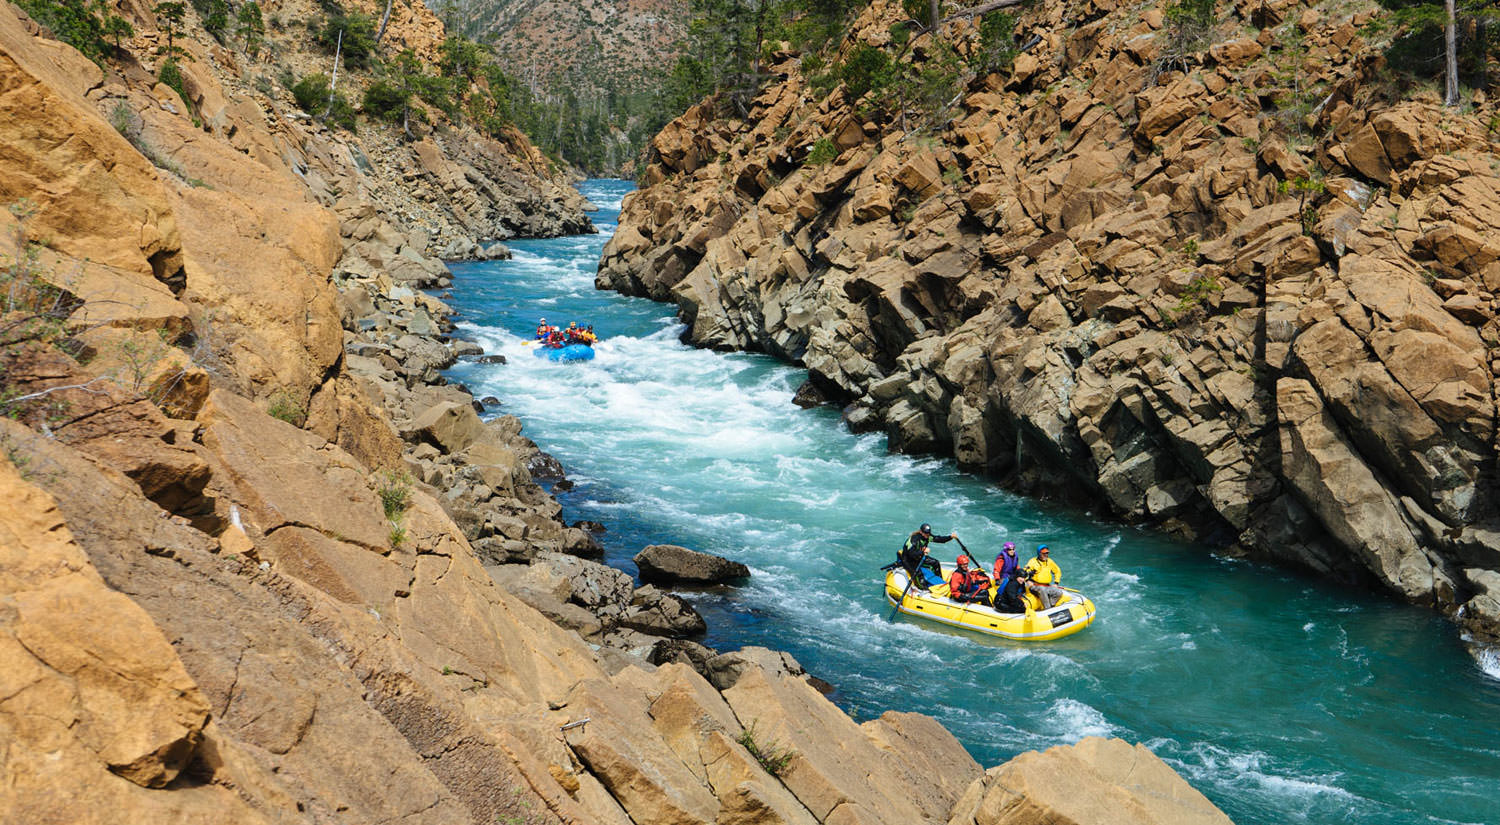 Rafters on a bright-blue river stand out in a dry river canyon.